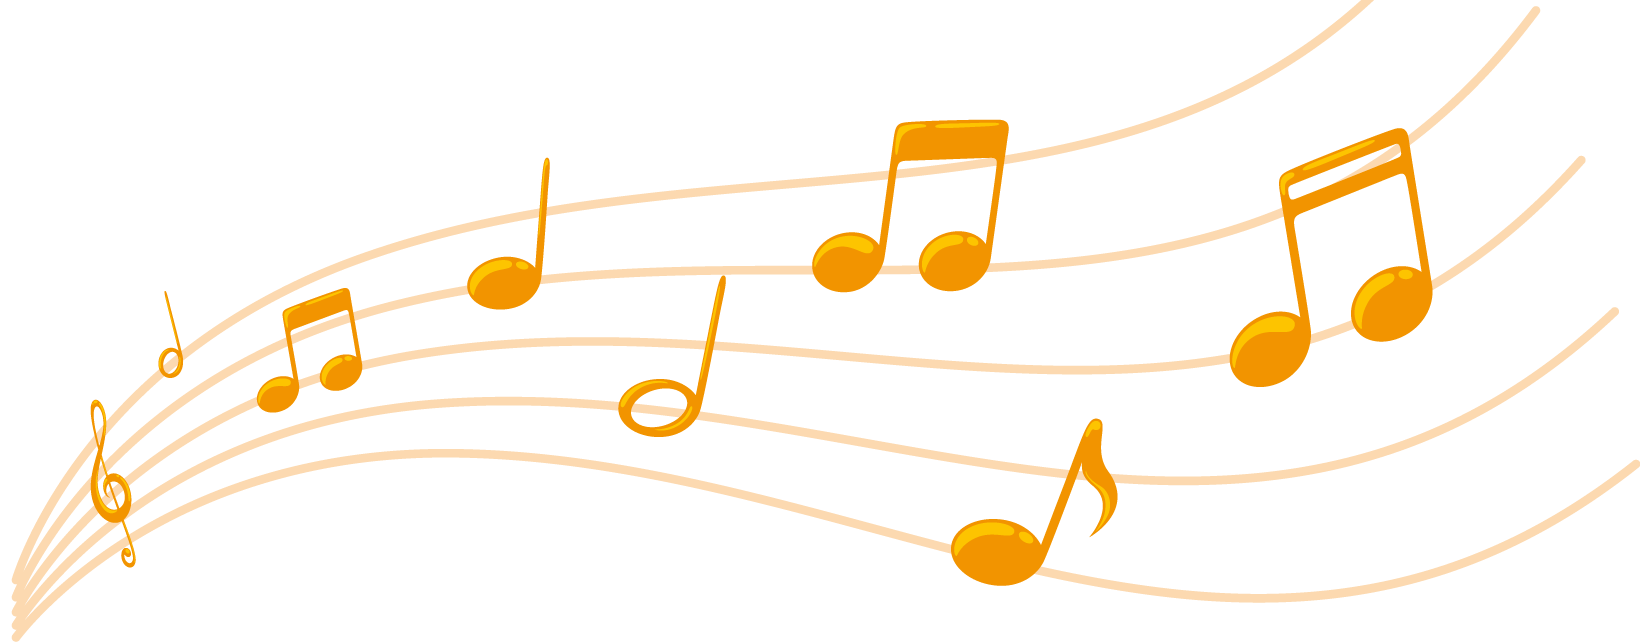 Png Hd Musical Notes Symbols Transparent Hd Musical Notes: Index Of /wp-content/uploads/2010/08